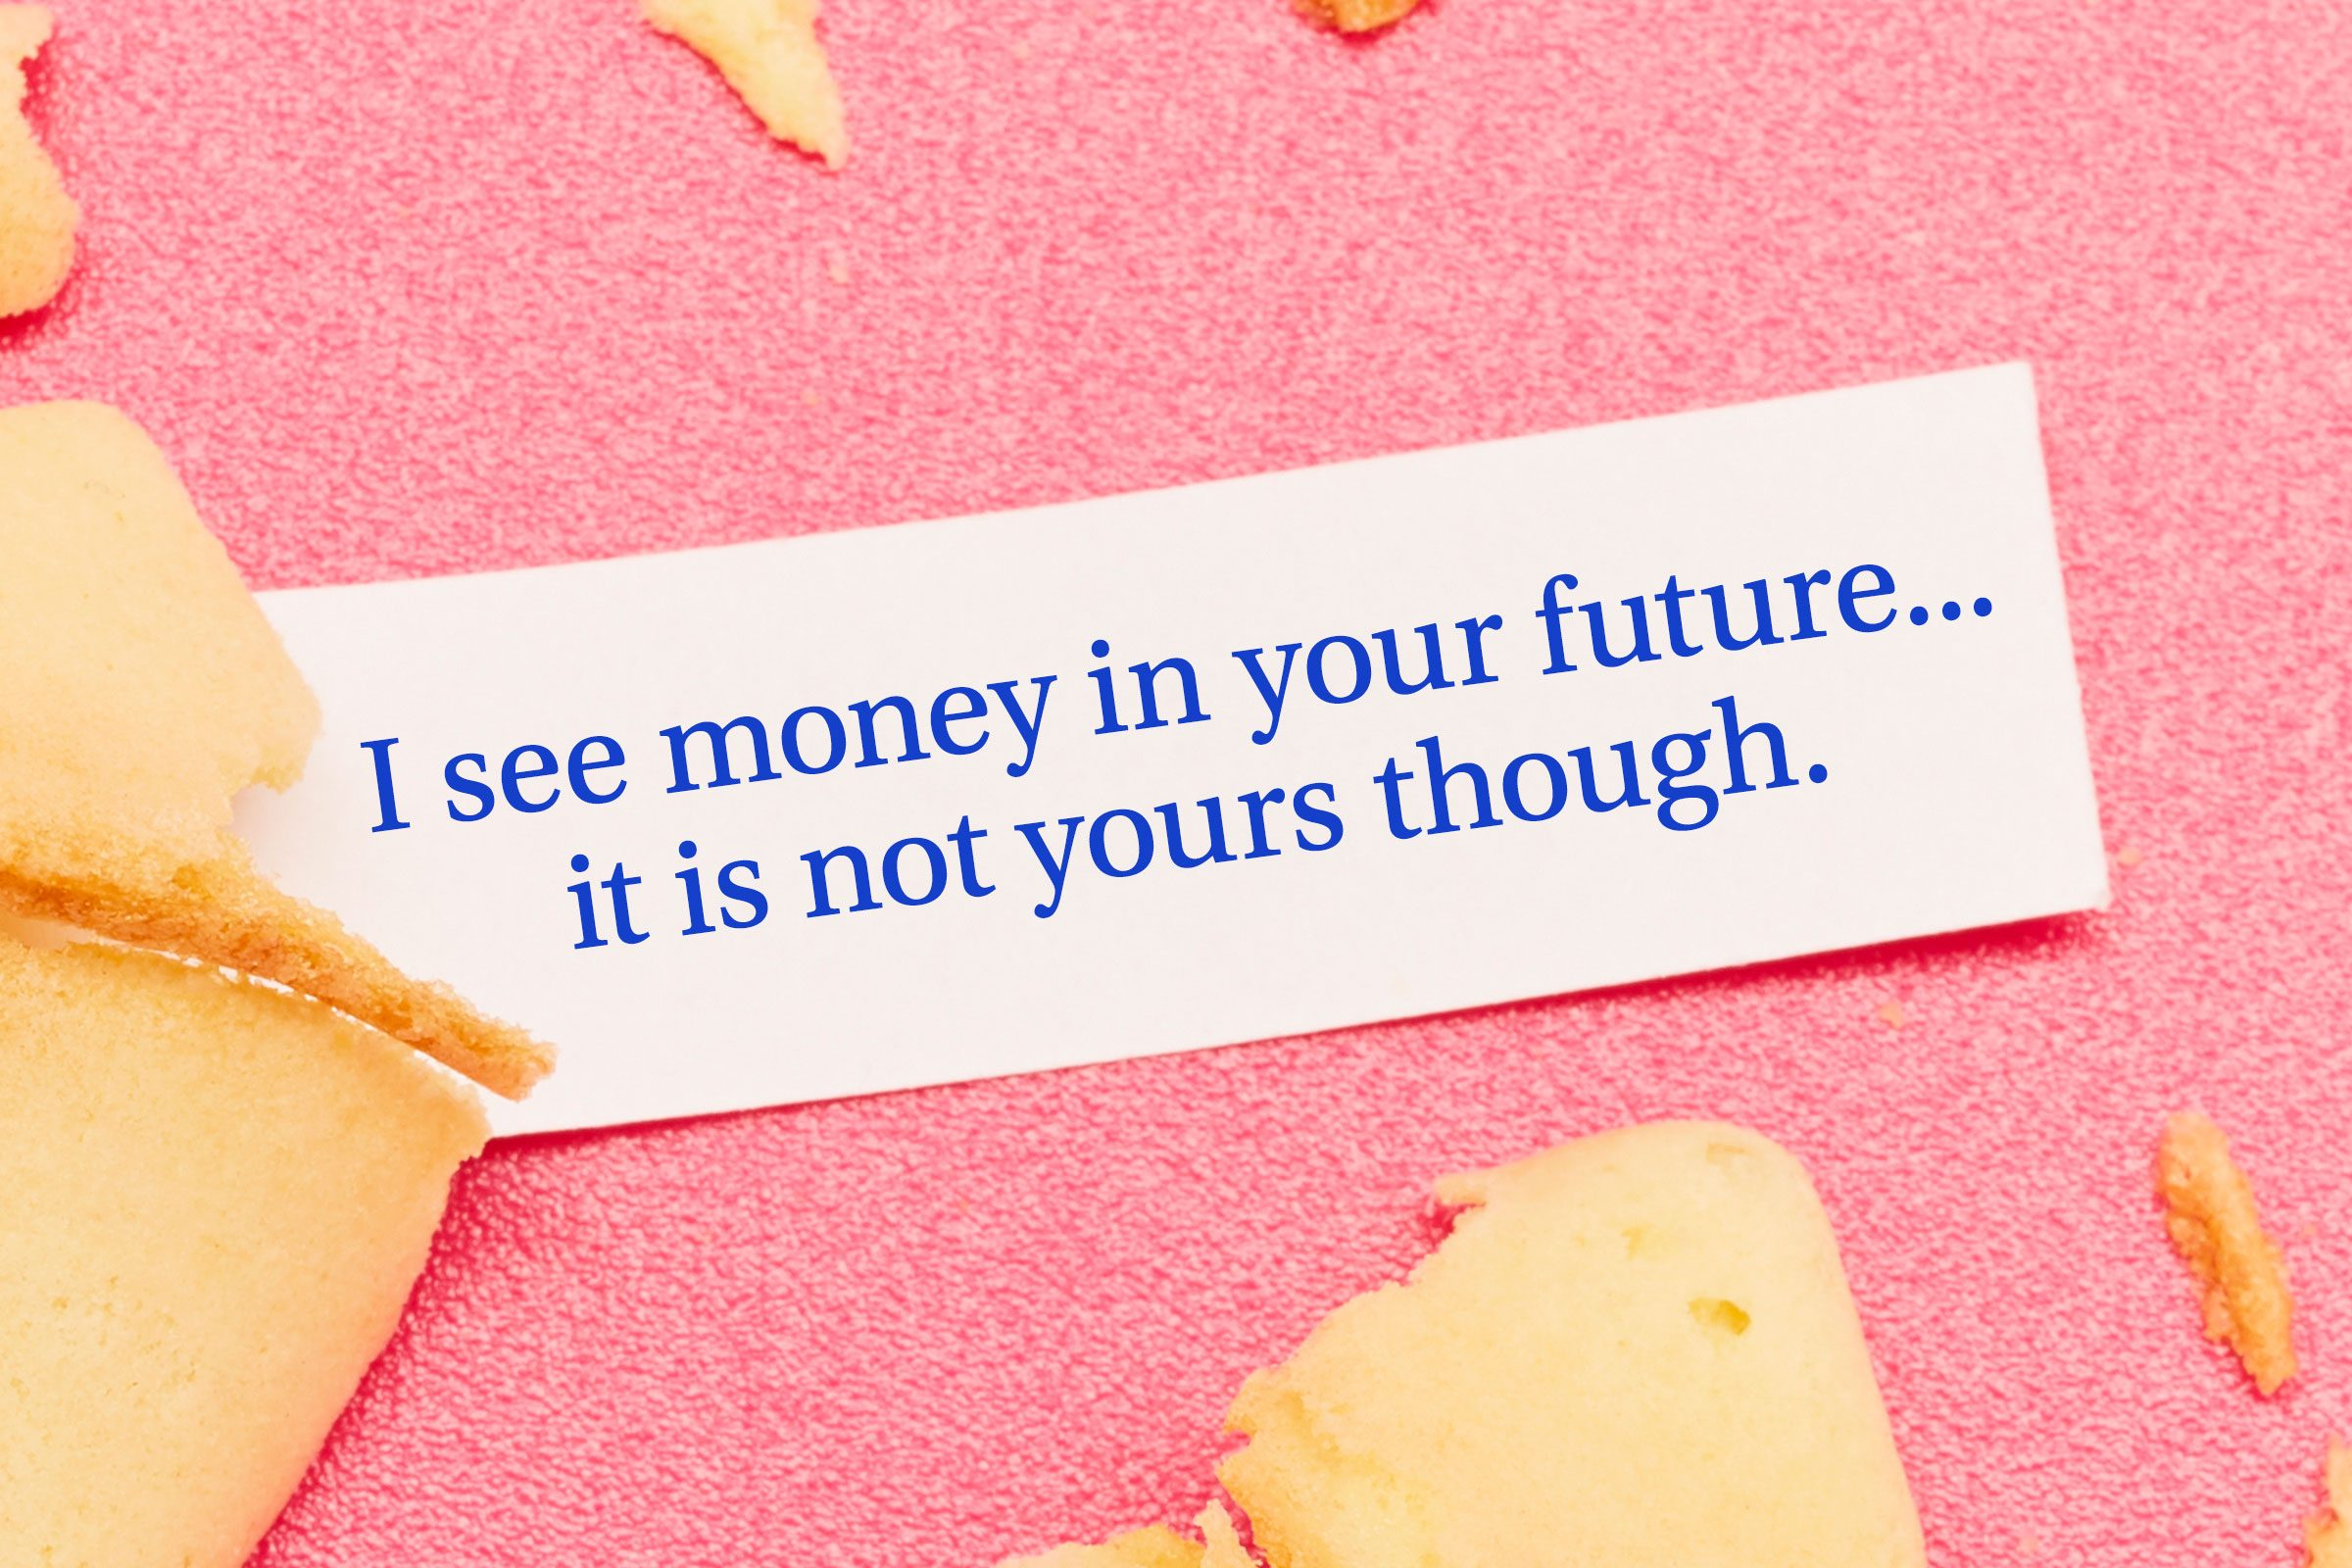 For image: I see money in your future...it is not yours though.